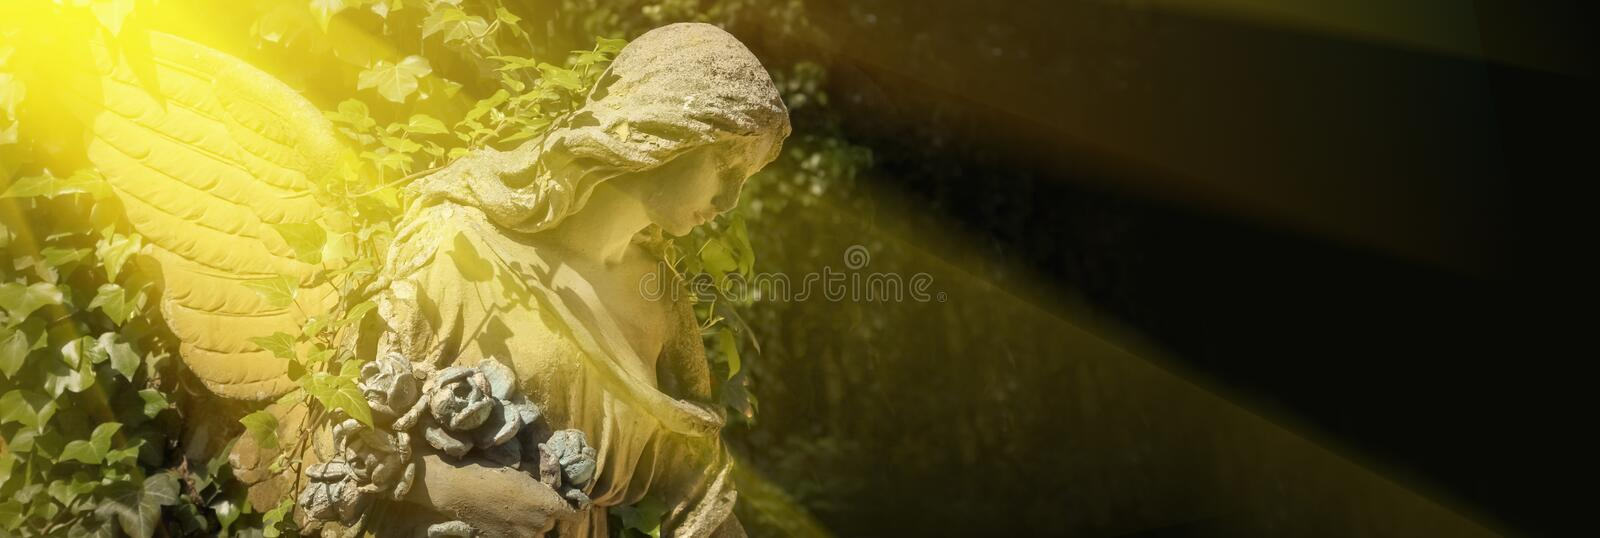 Ancient statue of gold angel with wings against dark background. Place for text for designer royalty free stock images